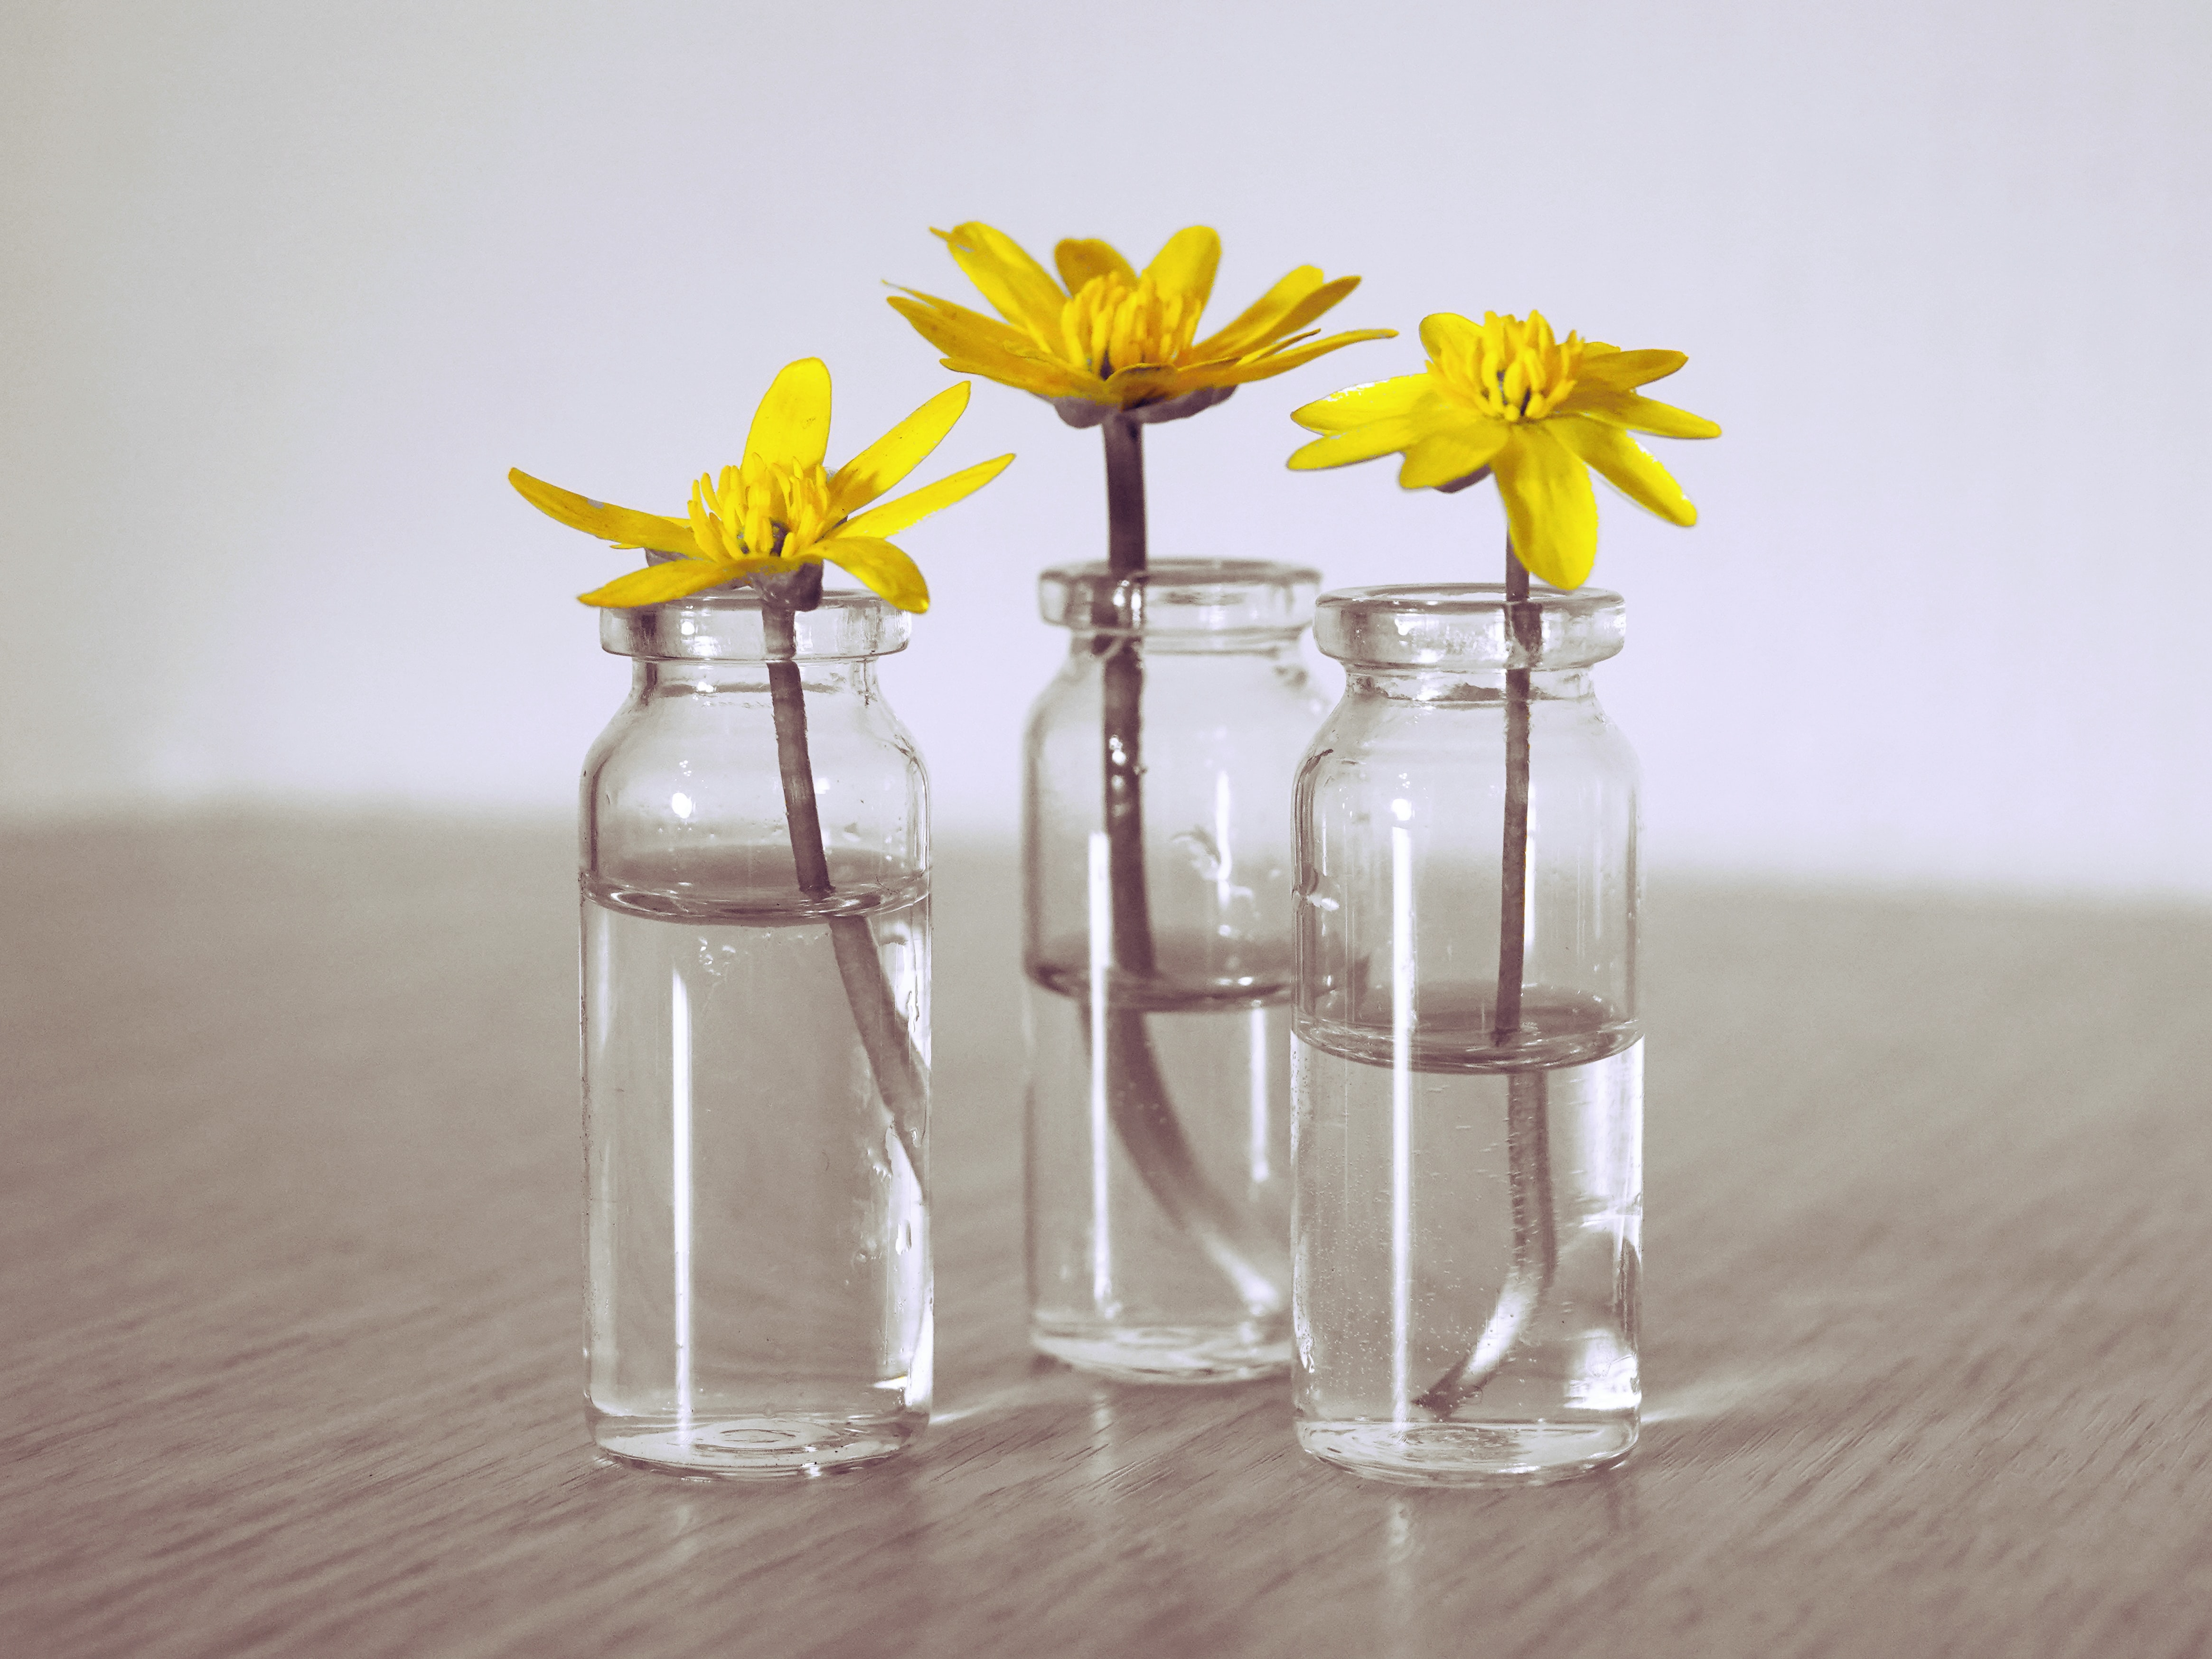 three yellow petaled flowers in clear glass jars